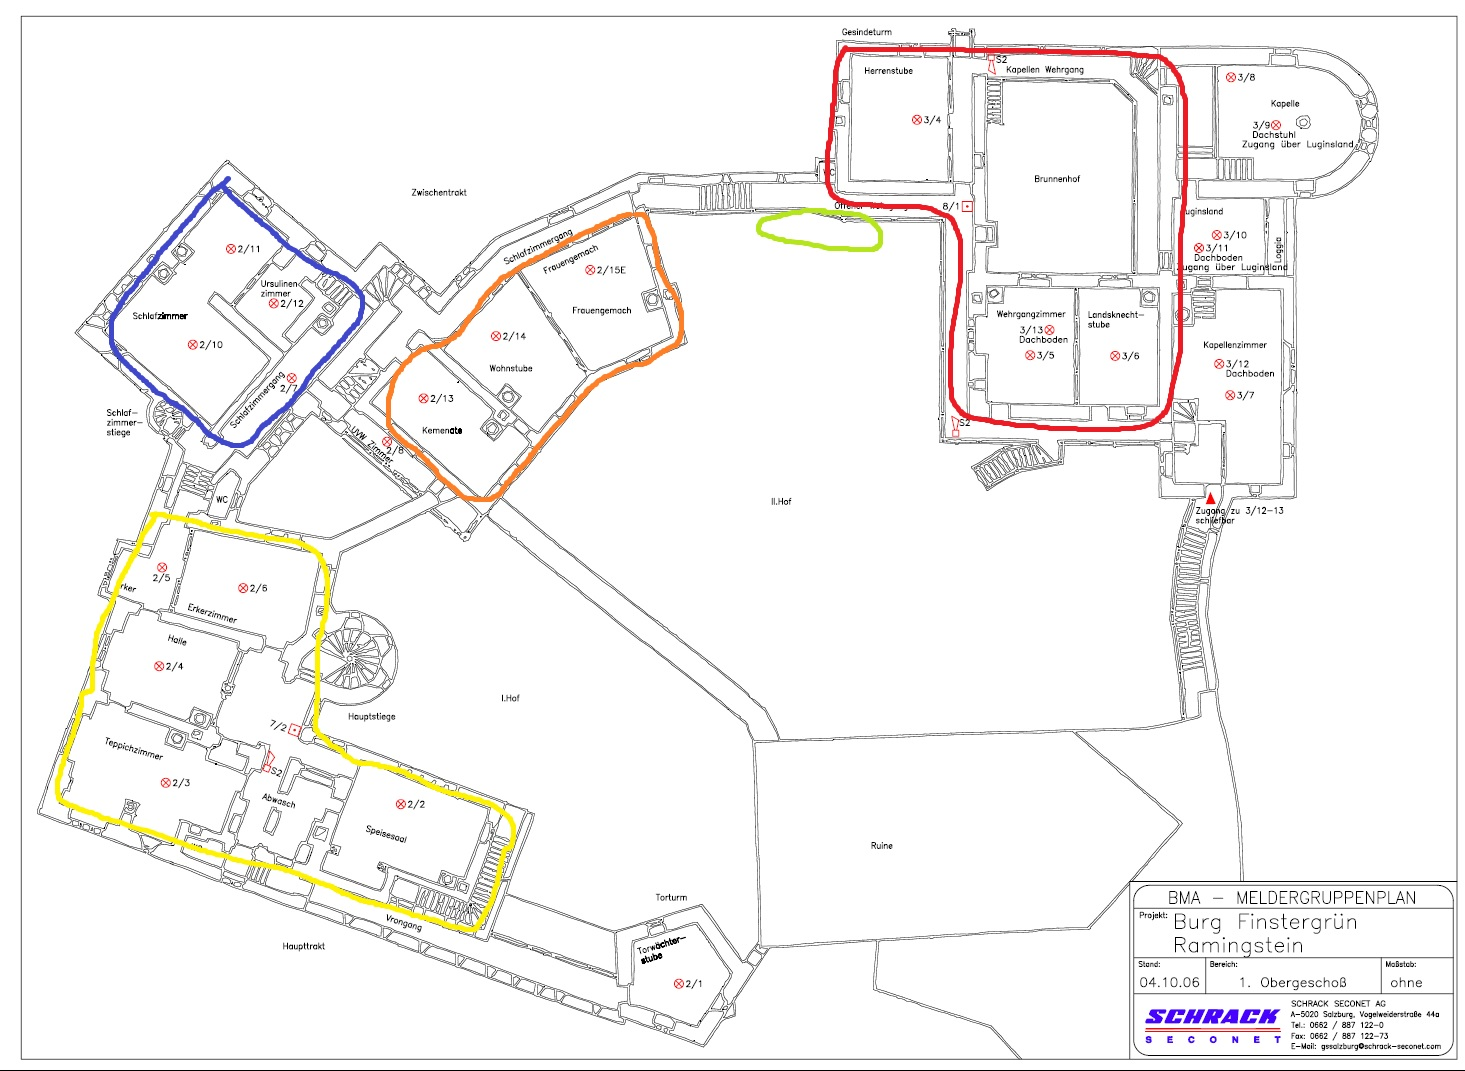 """The colours mark the following area's  Yellow: Main Section (""""Haupttrakt"""") Blue: Main Tower Orange: Middle Section (""""Zwischentrakt"""") Red: Front Section (""""Vordertrakt') - this is where the krewe rooms are located Green: Entrances to the showers and washing rooms"""